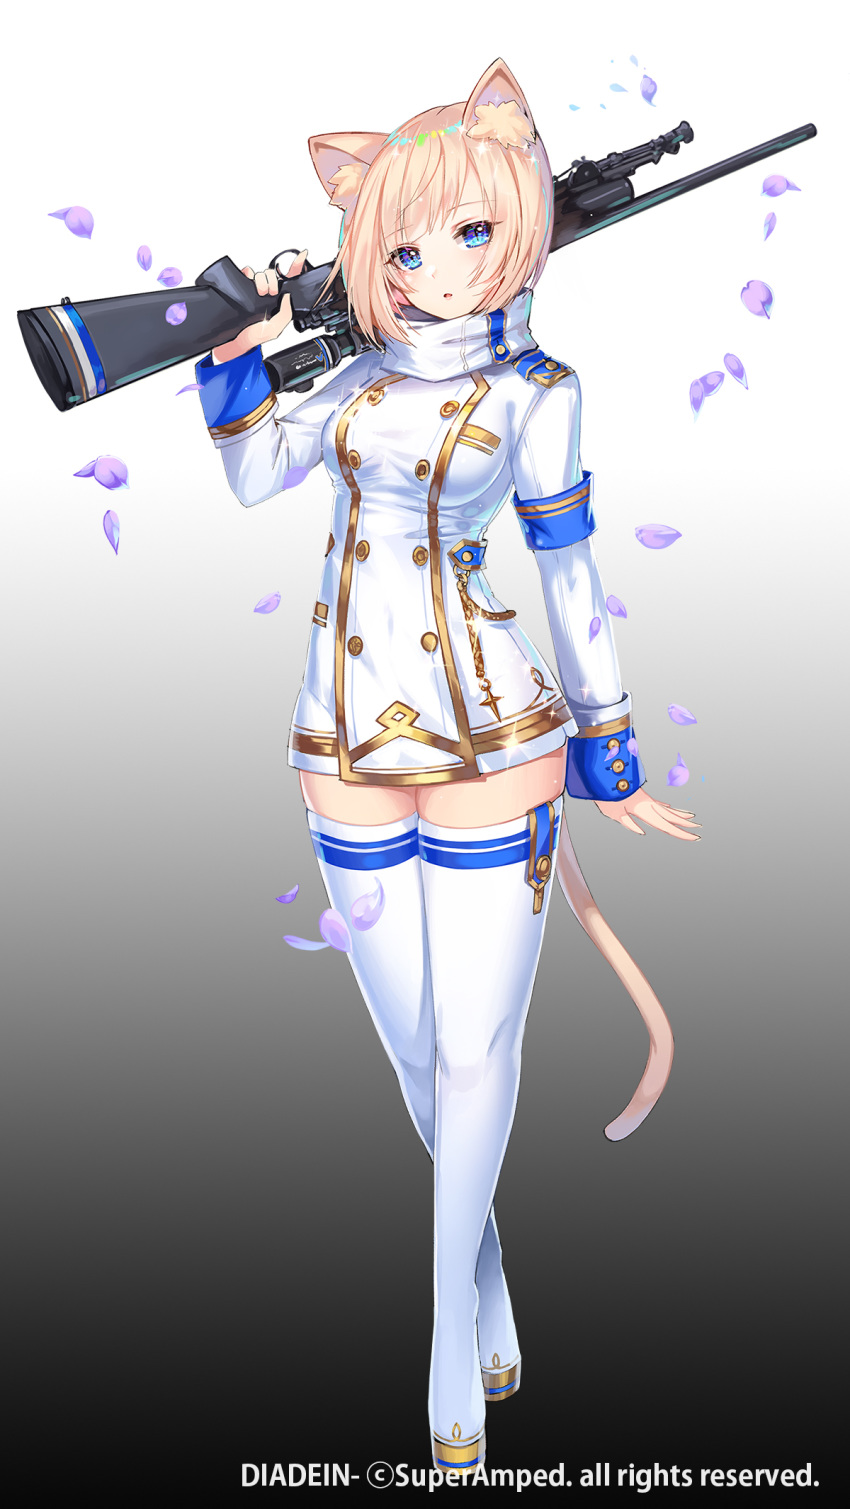 1girl animal_ear_fluff animal_ears apple_caramel arm_at_side armband bangs blonde_hair blue_eyes boots breasts cat_ears cat_tail commentary_request diadein double-breasted eyebrows_visible_through_hair full_body gradient gradient_background grey_background gun highres holding holding_gun holding_weapon large_breasts long_sleeves looking_at_viewer military military_uniform official_art open_mouth over_shoulder petals rifle short_hair solo standing tail thigh-highs thigh_boots trigger_discipline uniform weapon weapon_over_shoulder white_footwear white_legwear zettai_ryouiki